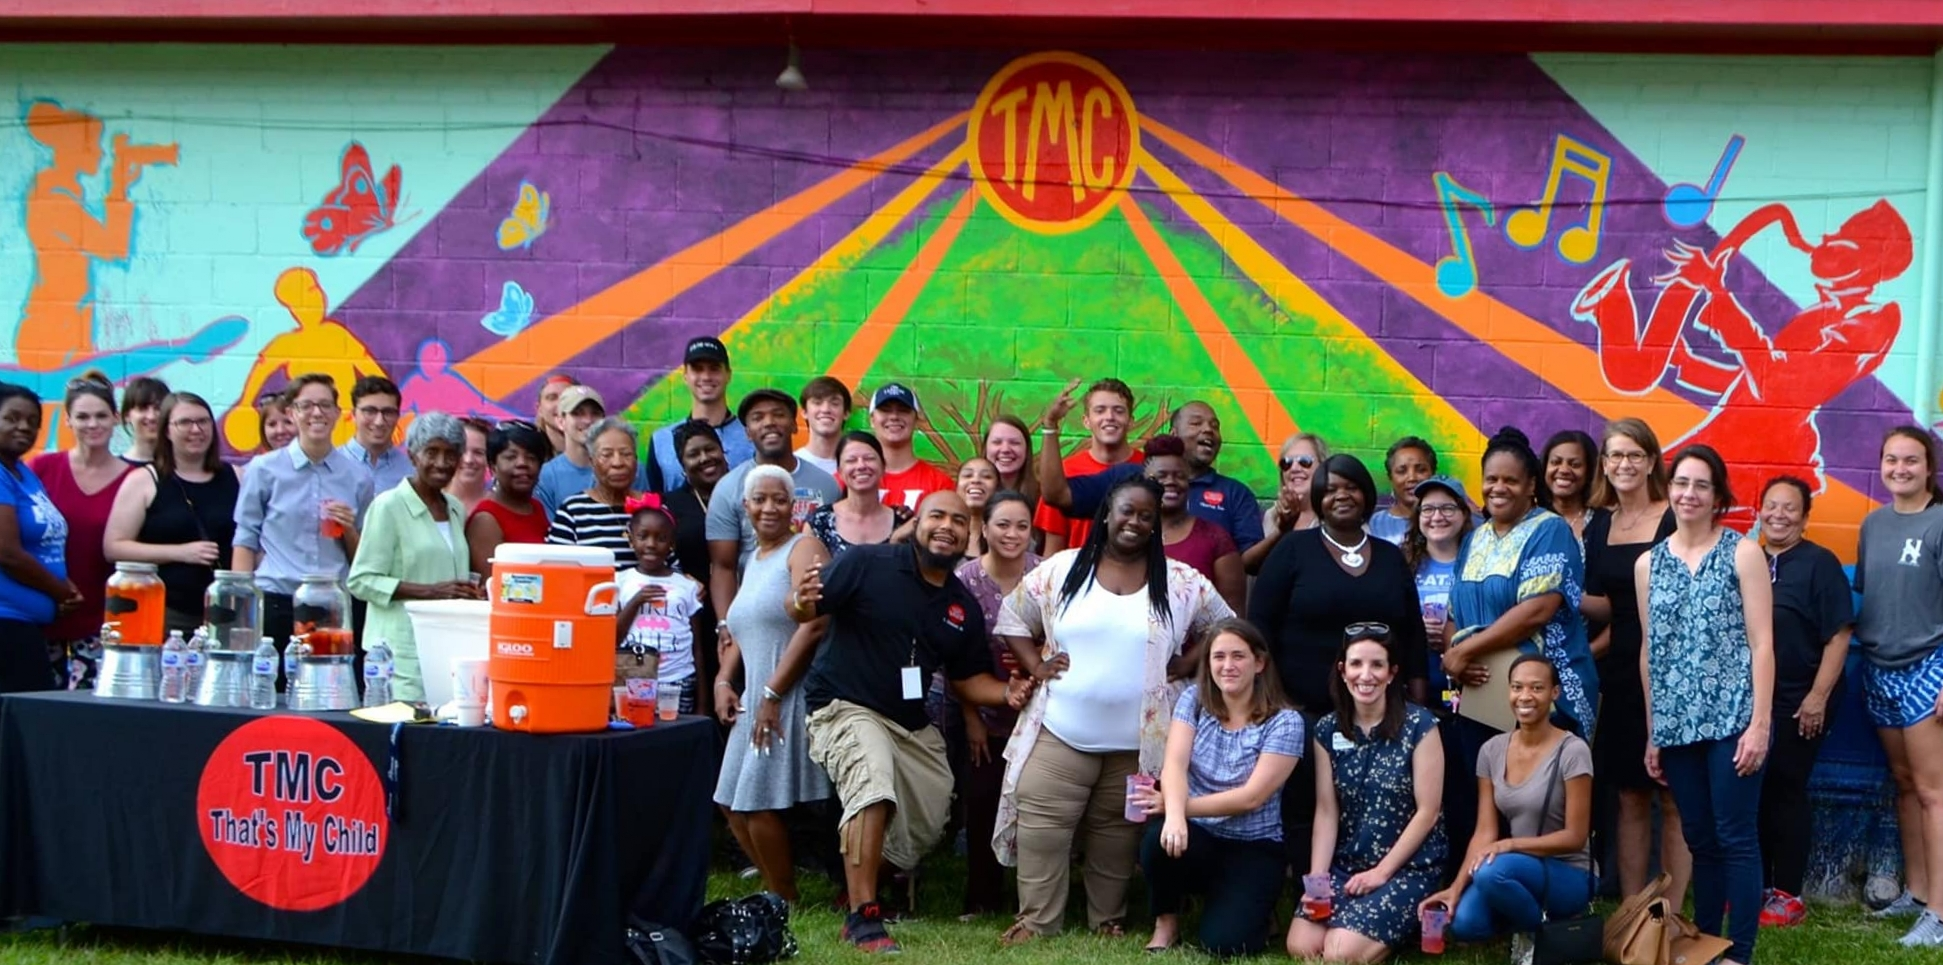 Reveal party for That's My Child mural, Montgomery, AL September 2018. Painted with Milton Madison.